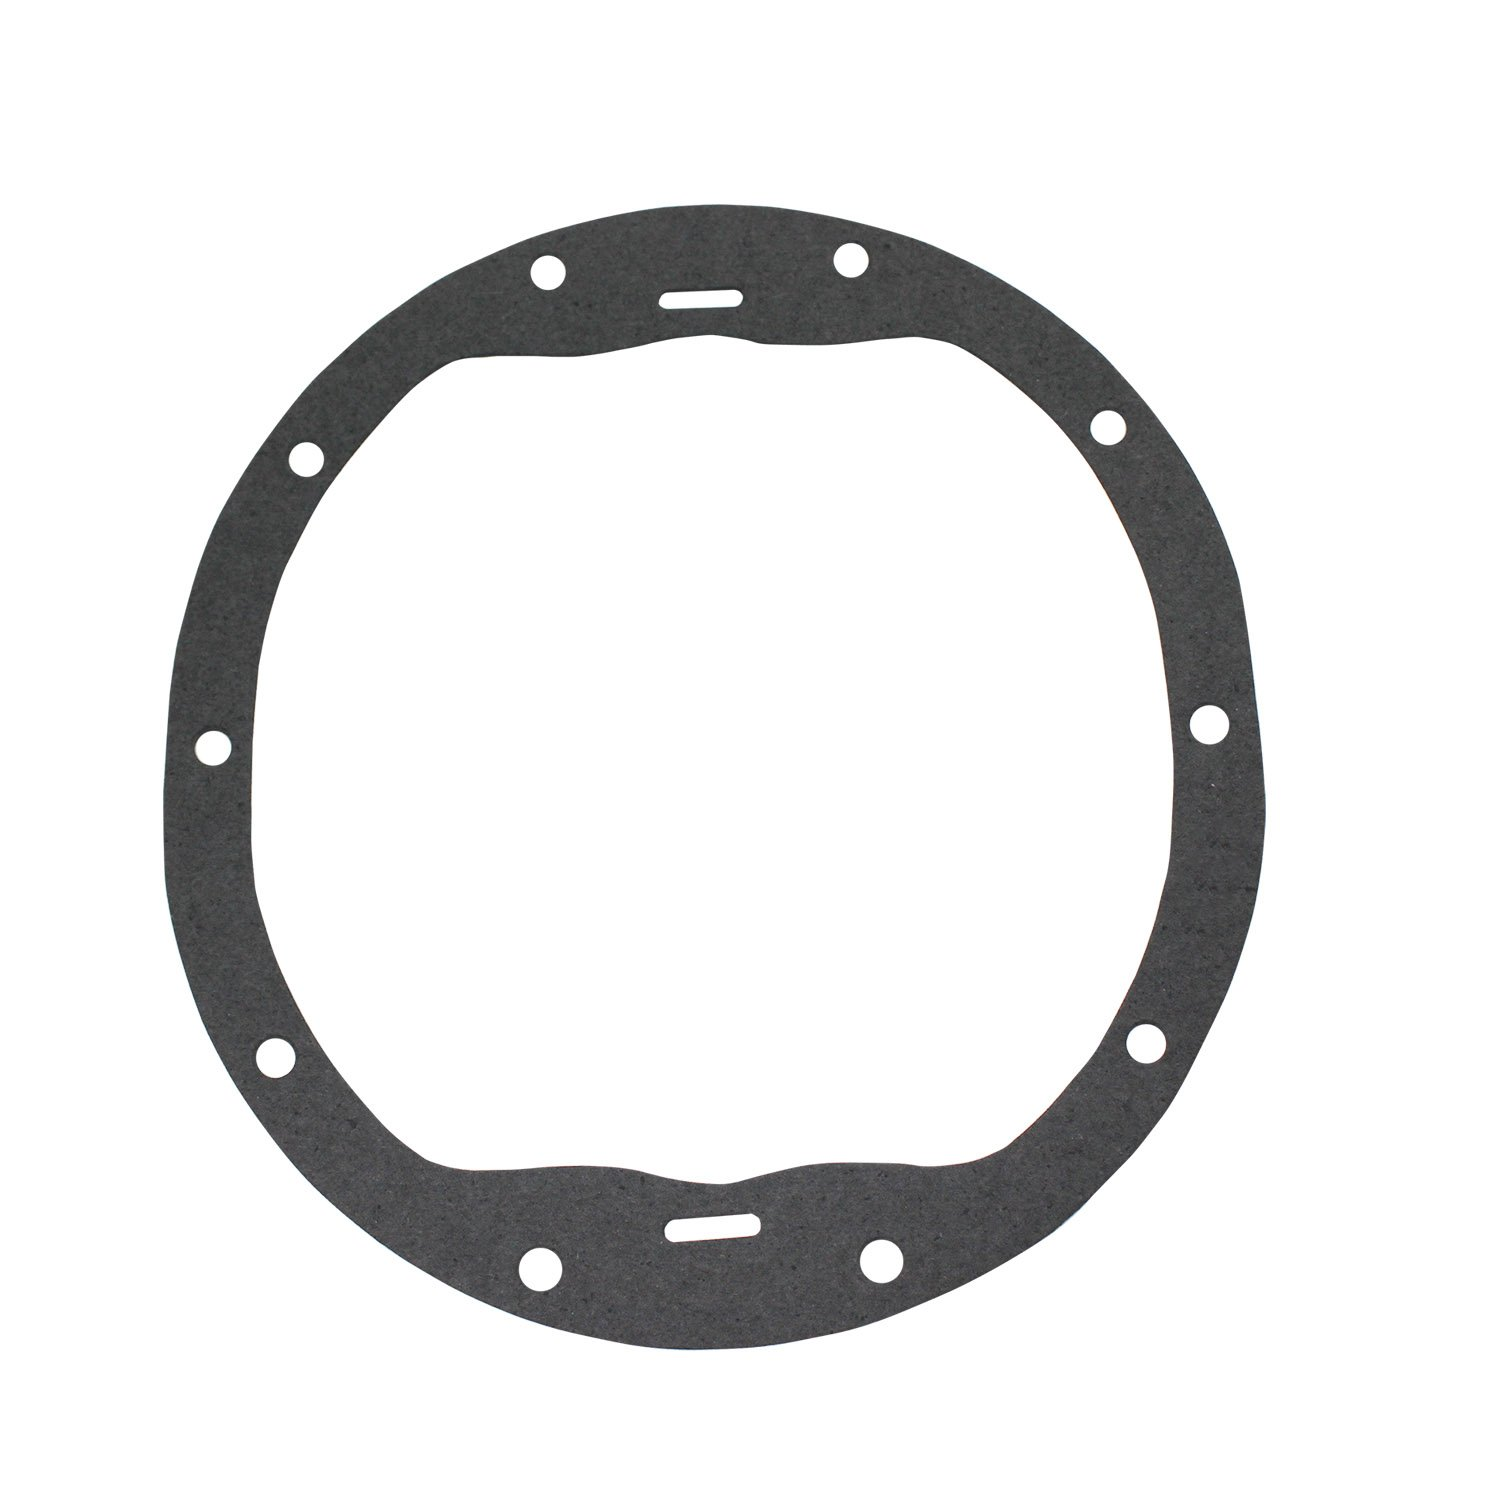 Mota Performance A96951 10 Bolt Differential Cover Gasket for GM